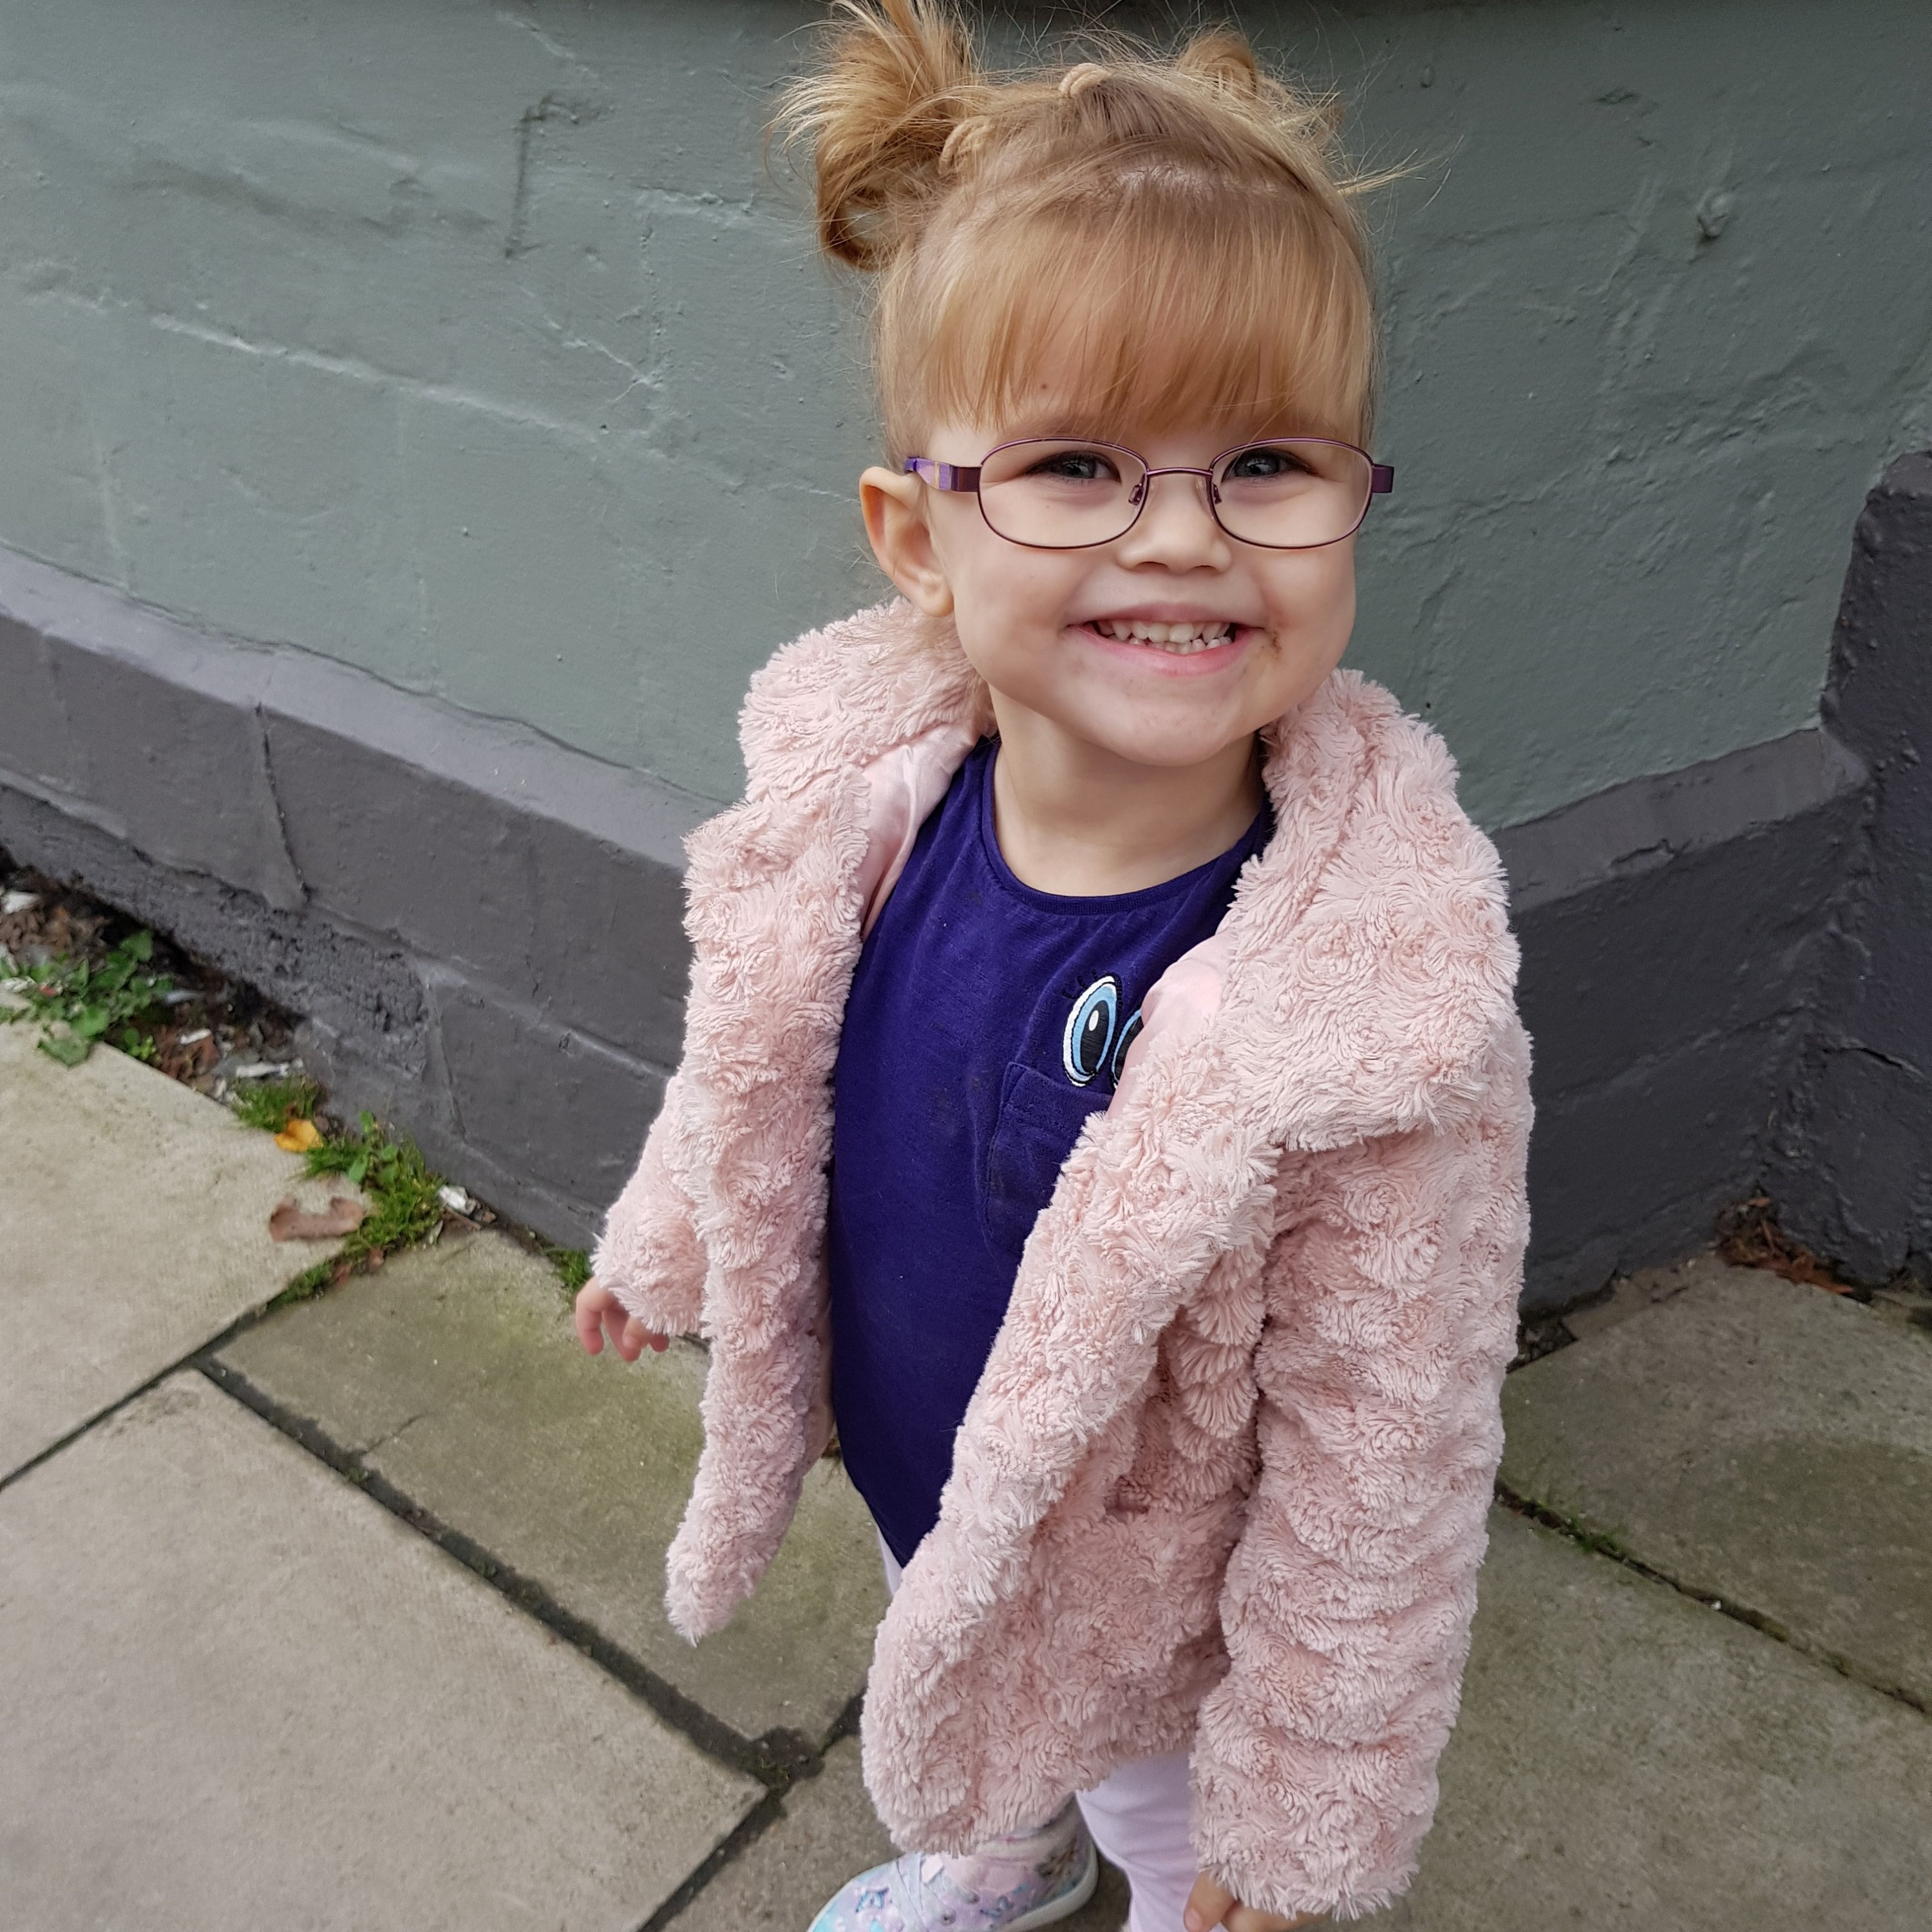 Shaniah with her new glasses